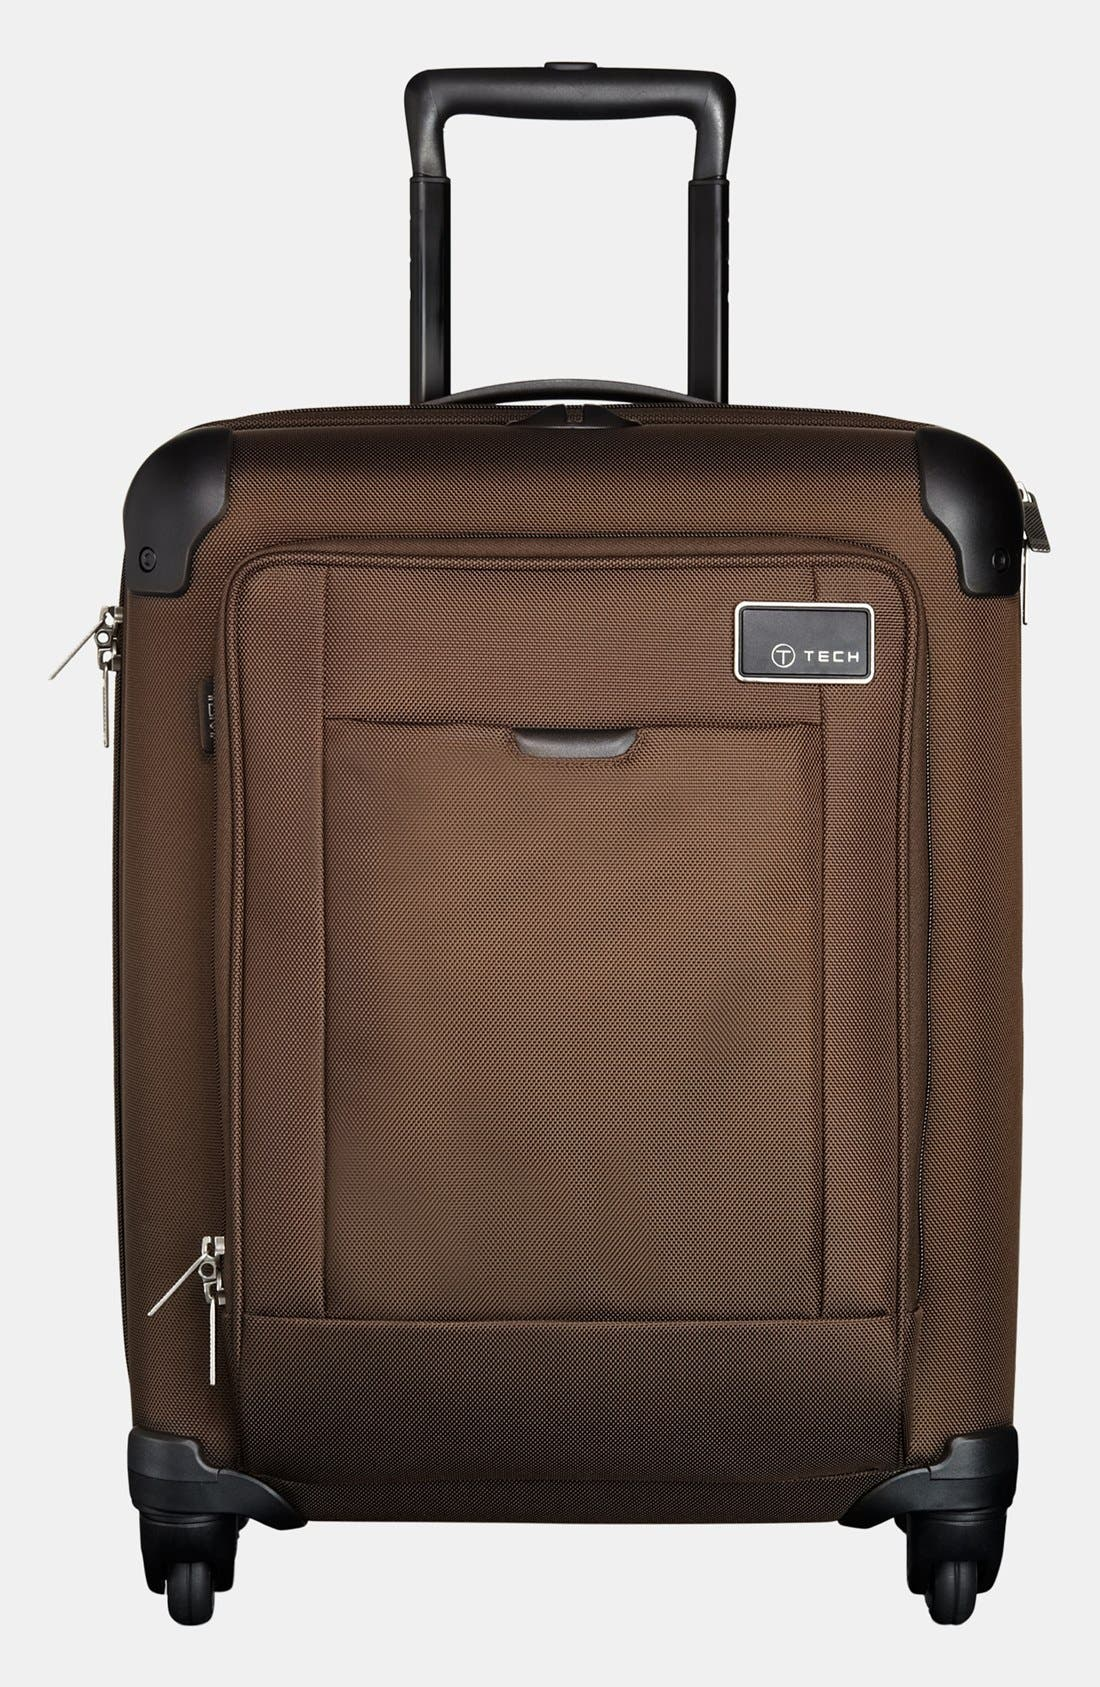 Main Image - Tumi 'T-Tech Network' Lightweight Wheeled Continental Carry On (22 Inch)